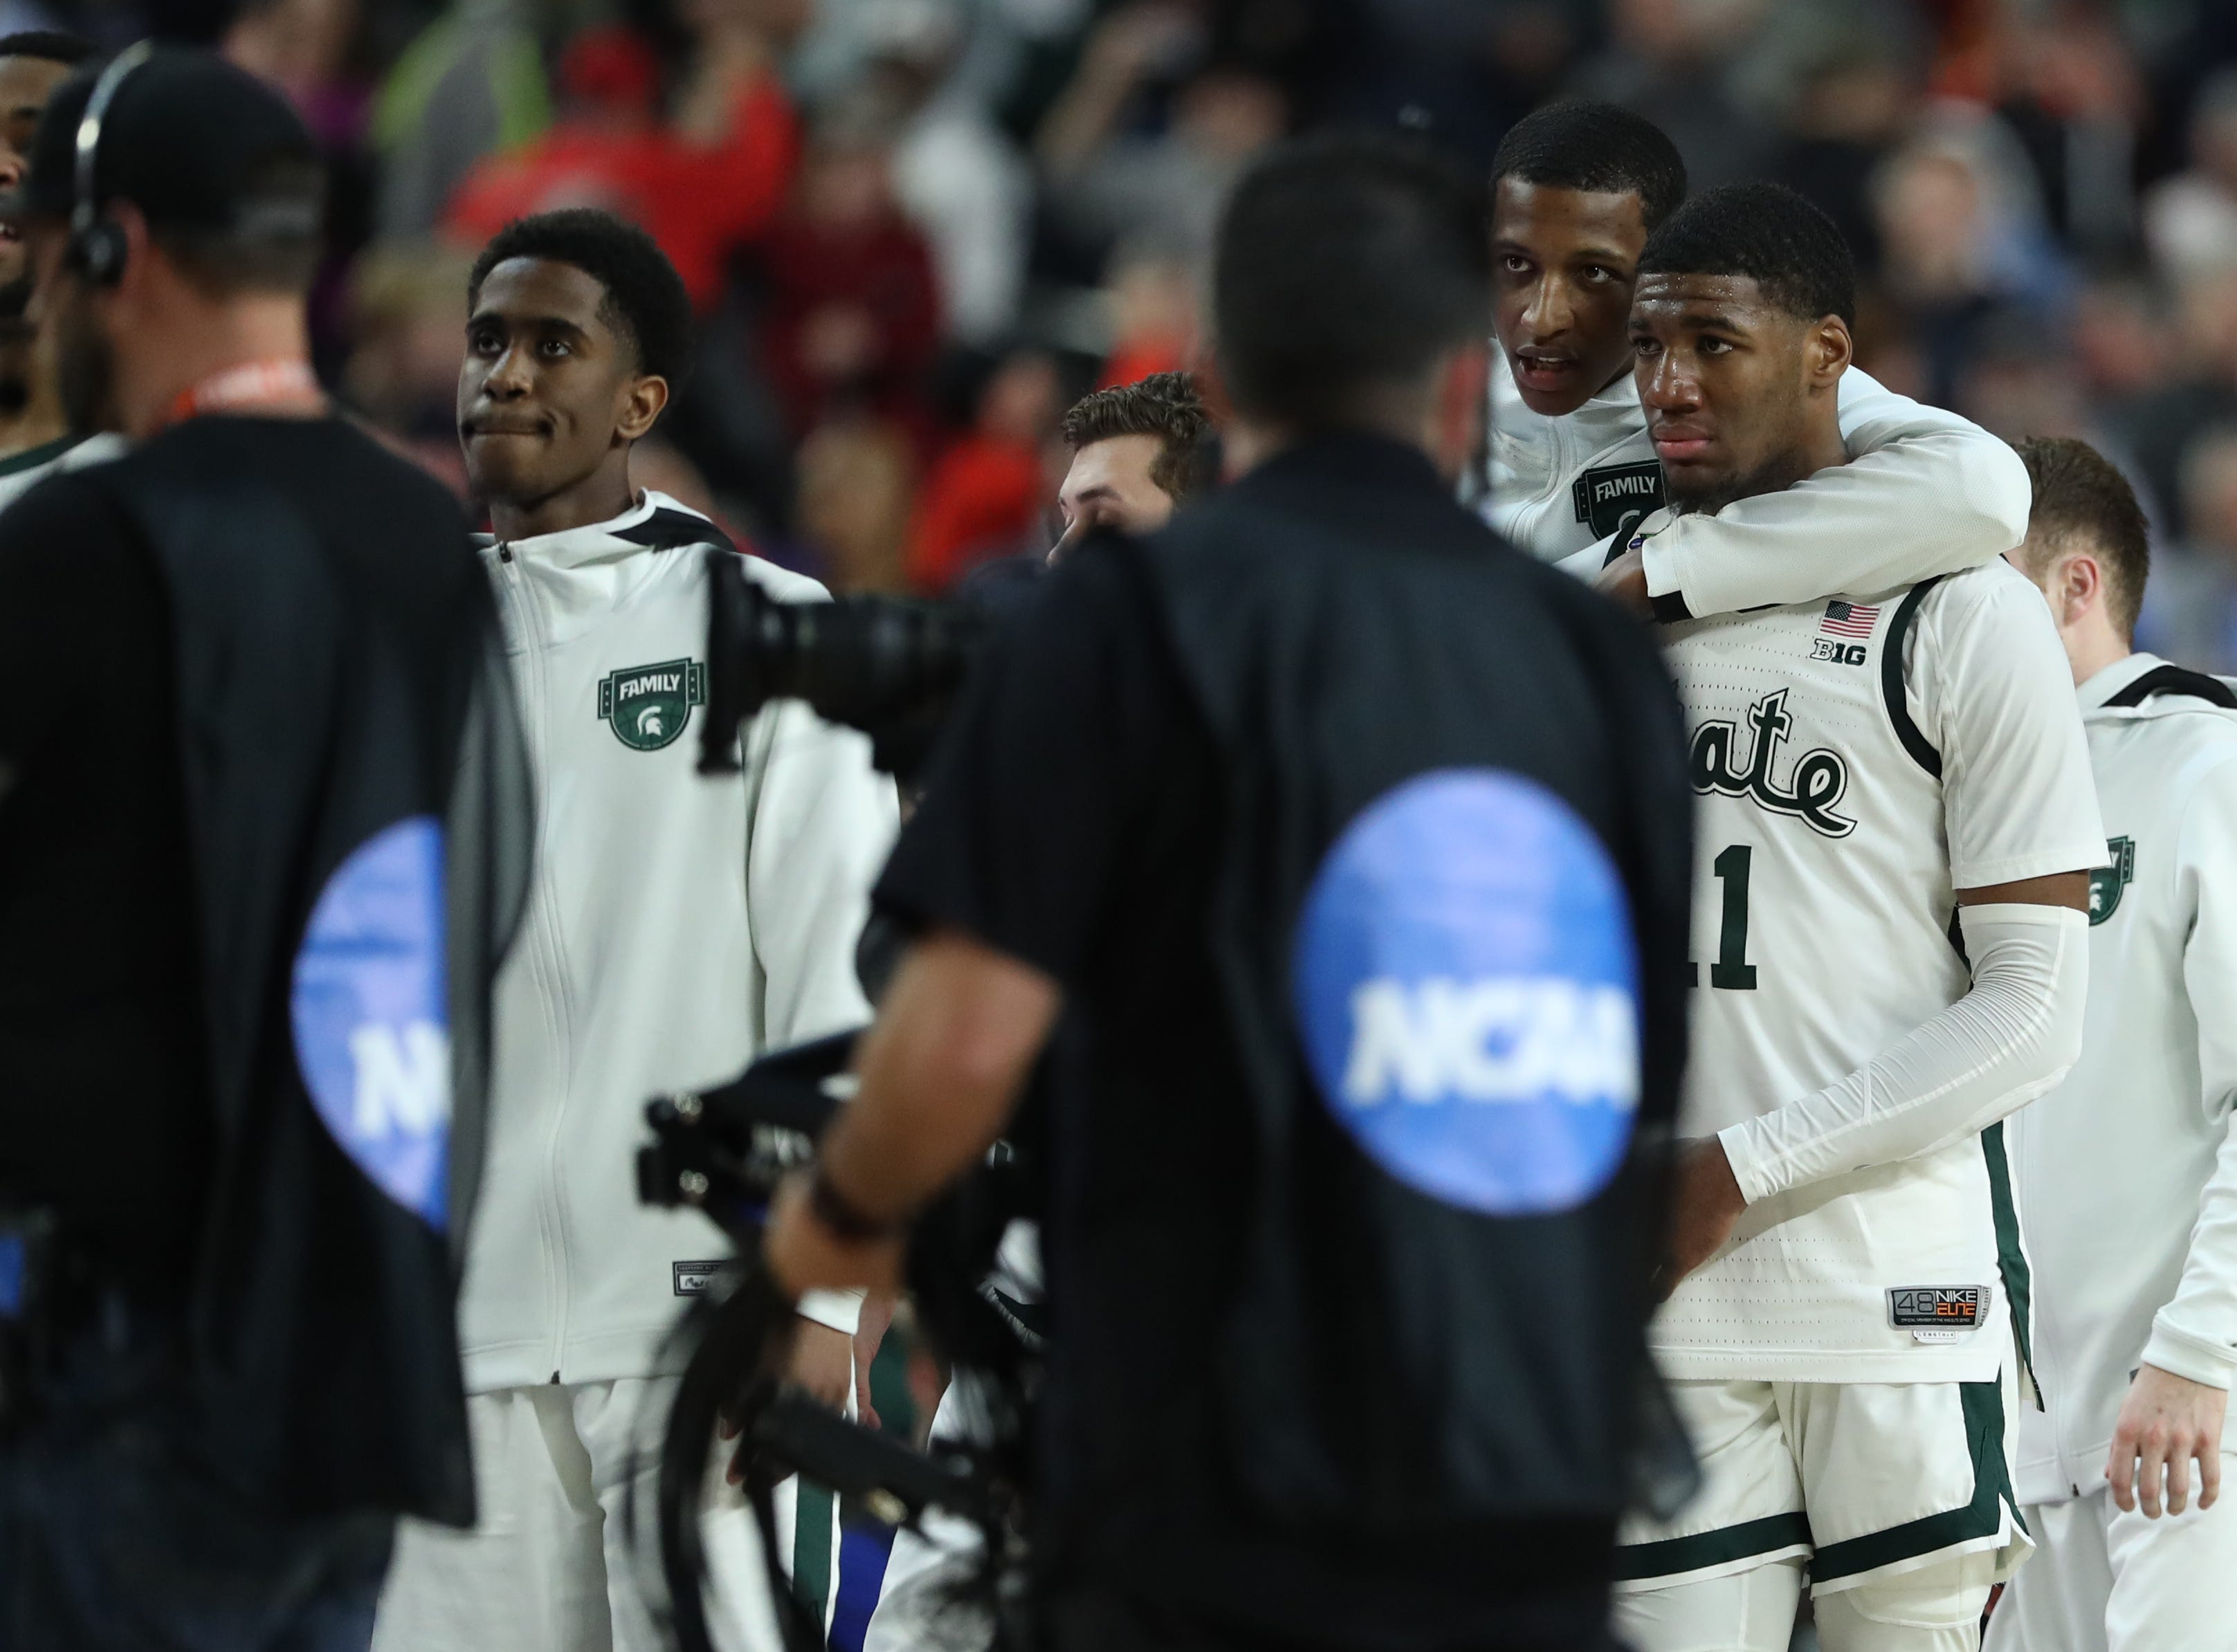 Michigan State walks off the court after losing the Final Four to Texas Tech at U.S. Bank Stadium in Minneapolis, Minnesota on Saturday, April 06, 2019.